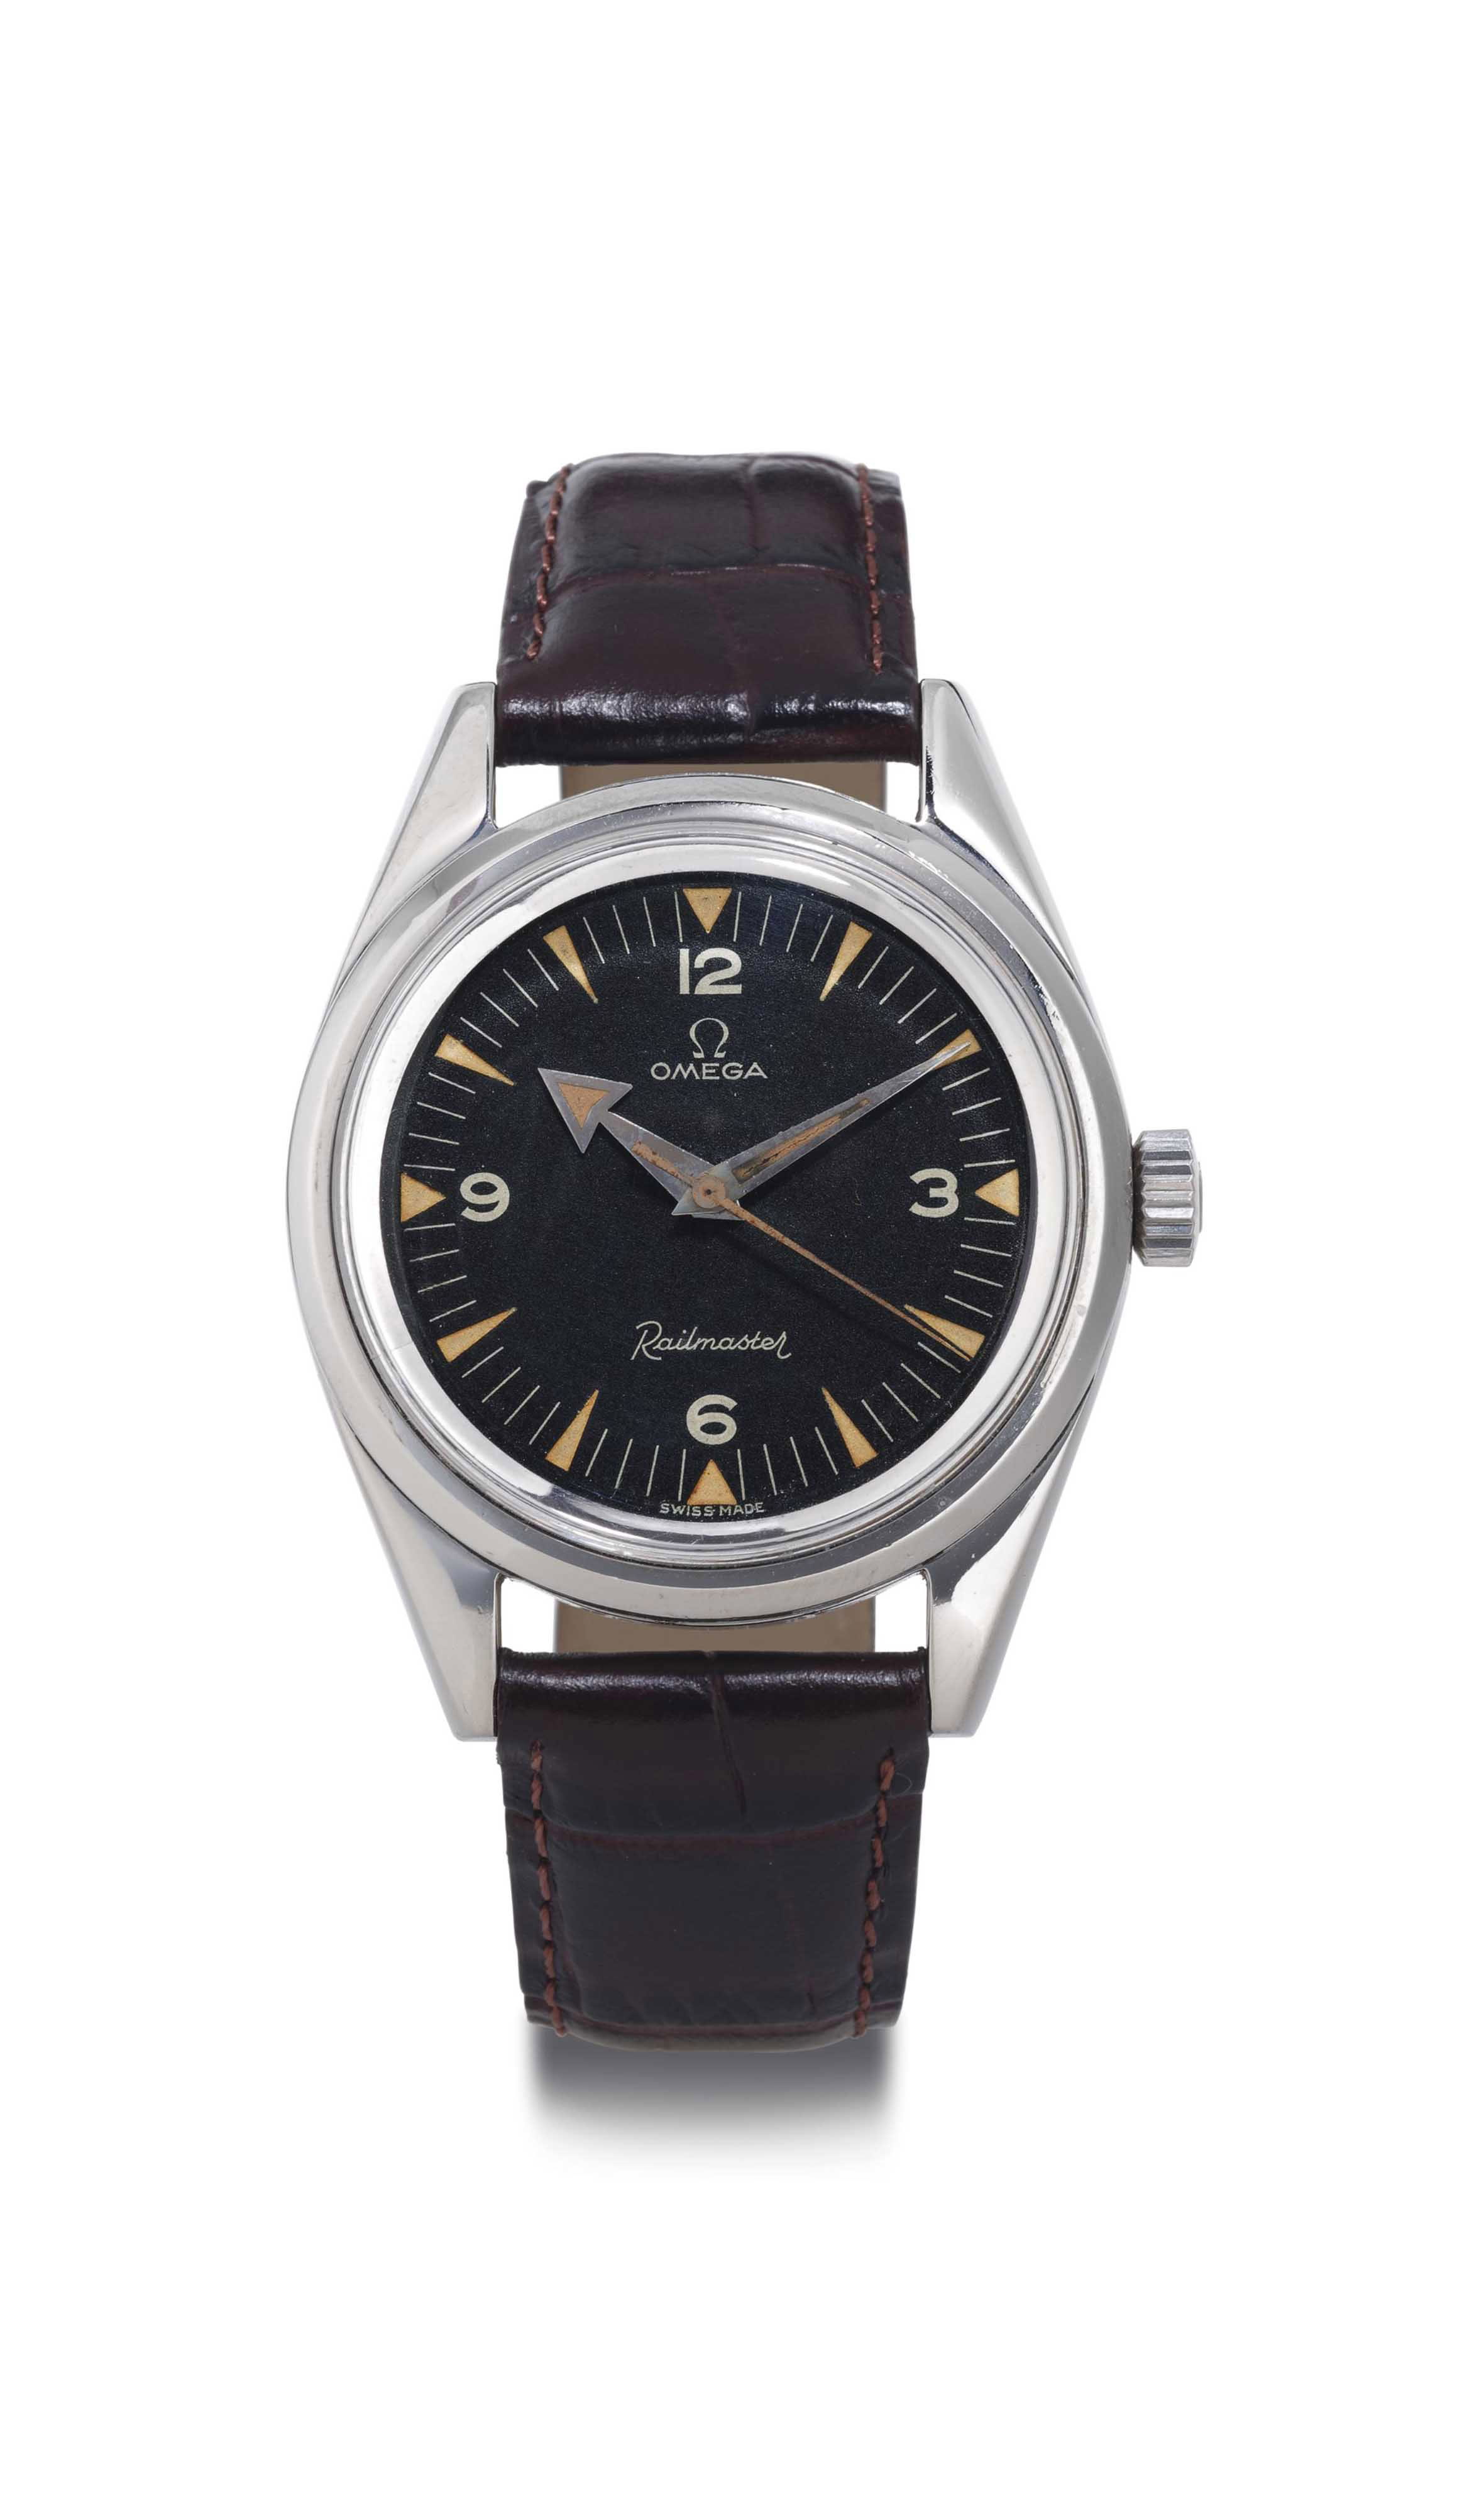 OMEGA.  A FINE AND RARE STAINLESS STEEL WRISTWATCH WITH CENTER SECONDS AND BLACK DIAL.